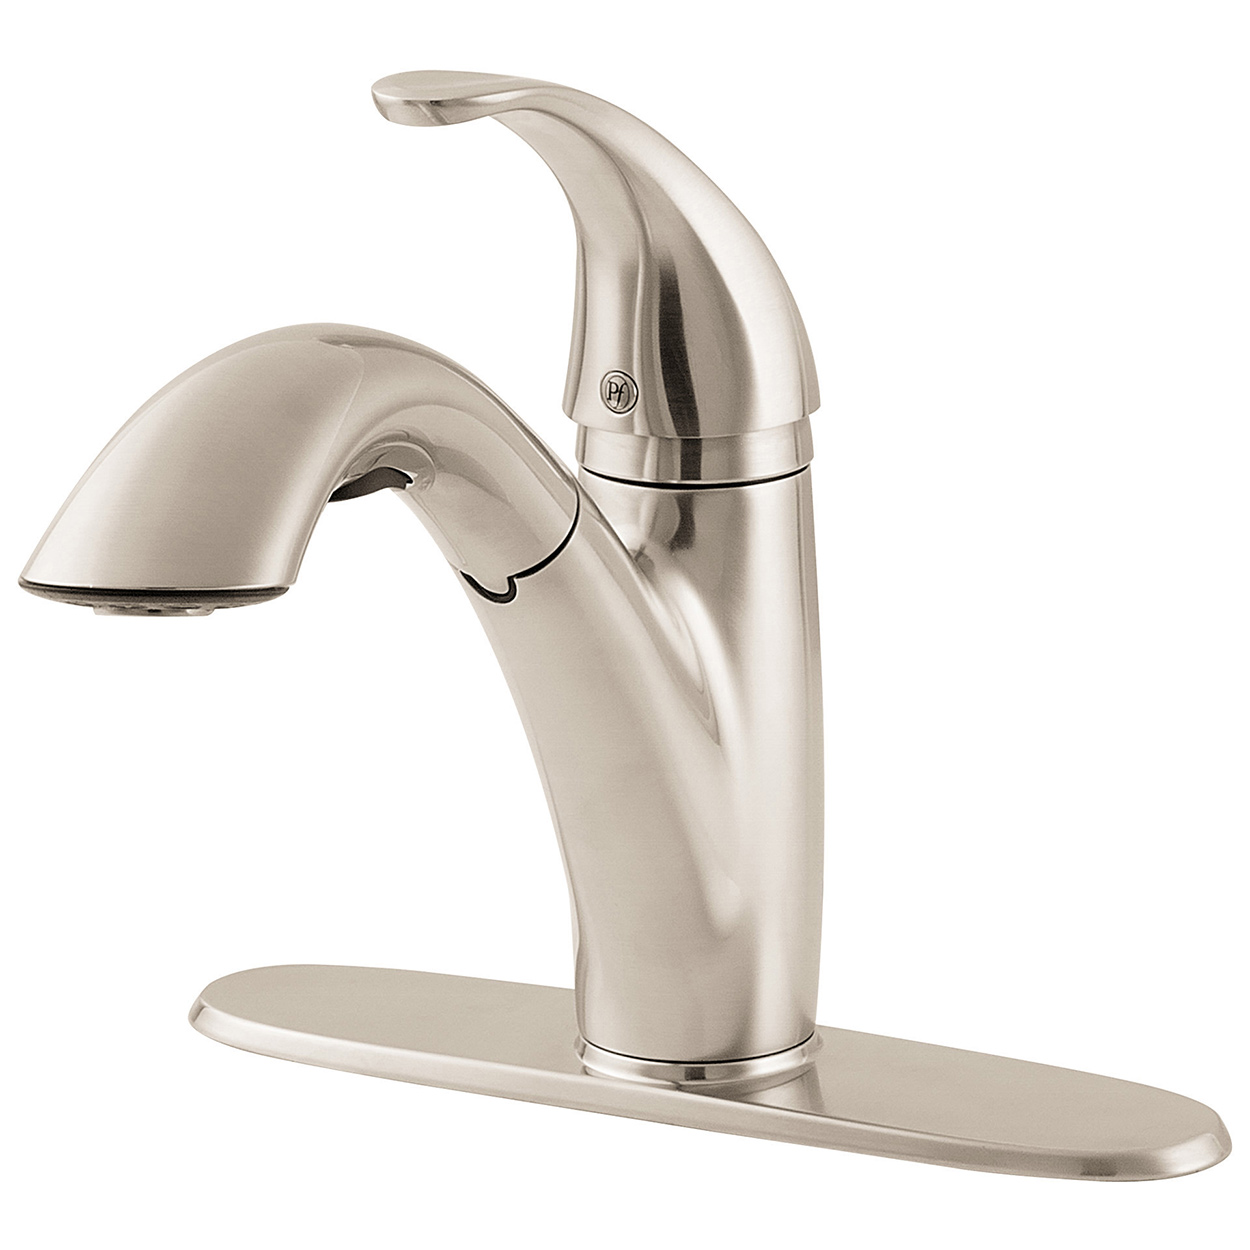 Kitchen Faucet No Water: Pfister GT5347SS Treviso 3 Function Pullout